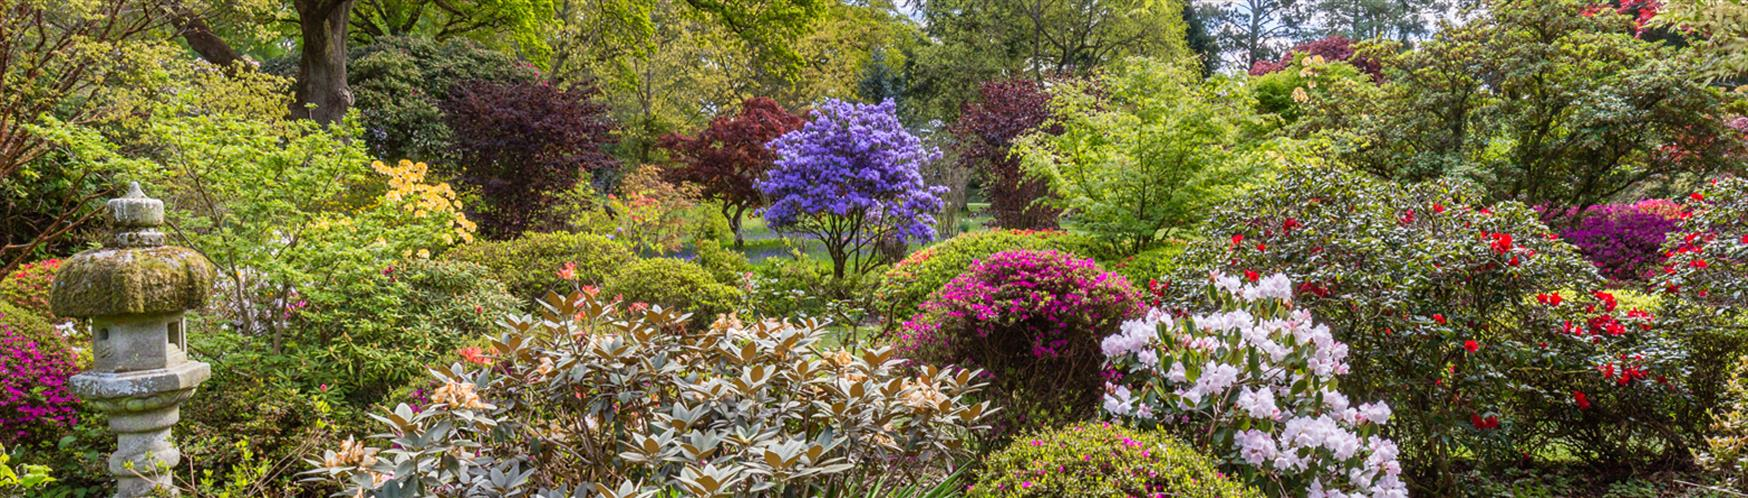 10 Places To Find The Best Spring Flowers In Surrey Visit Surrey